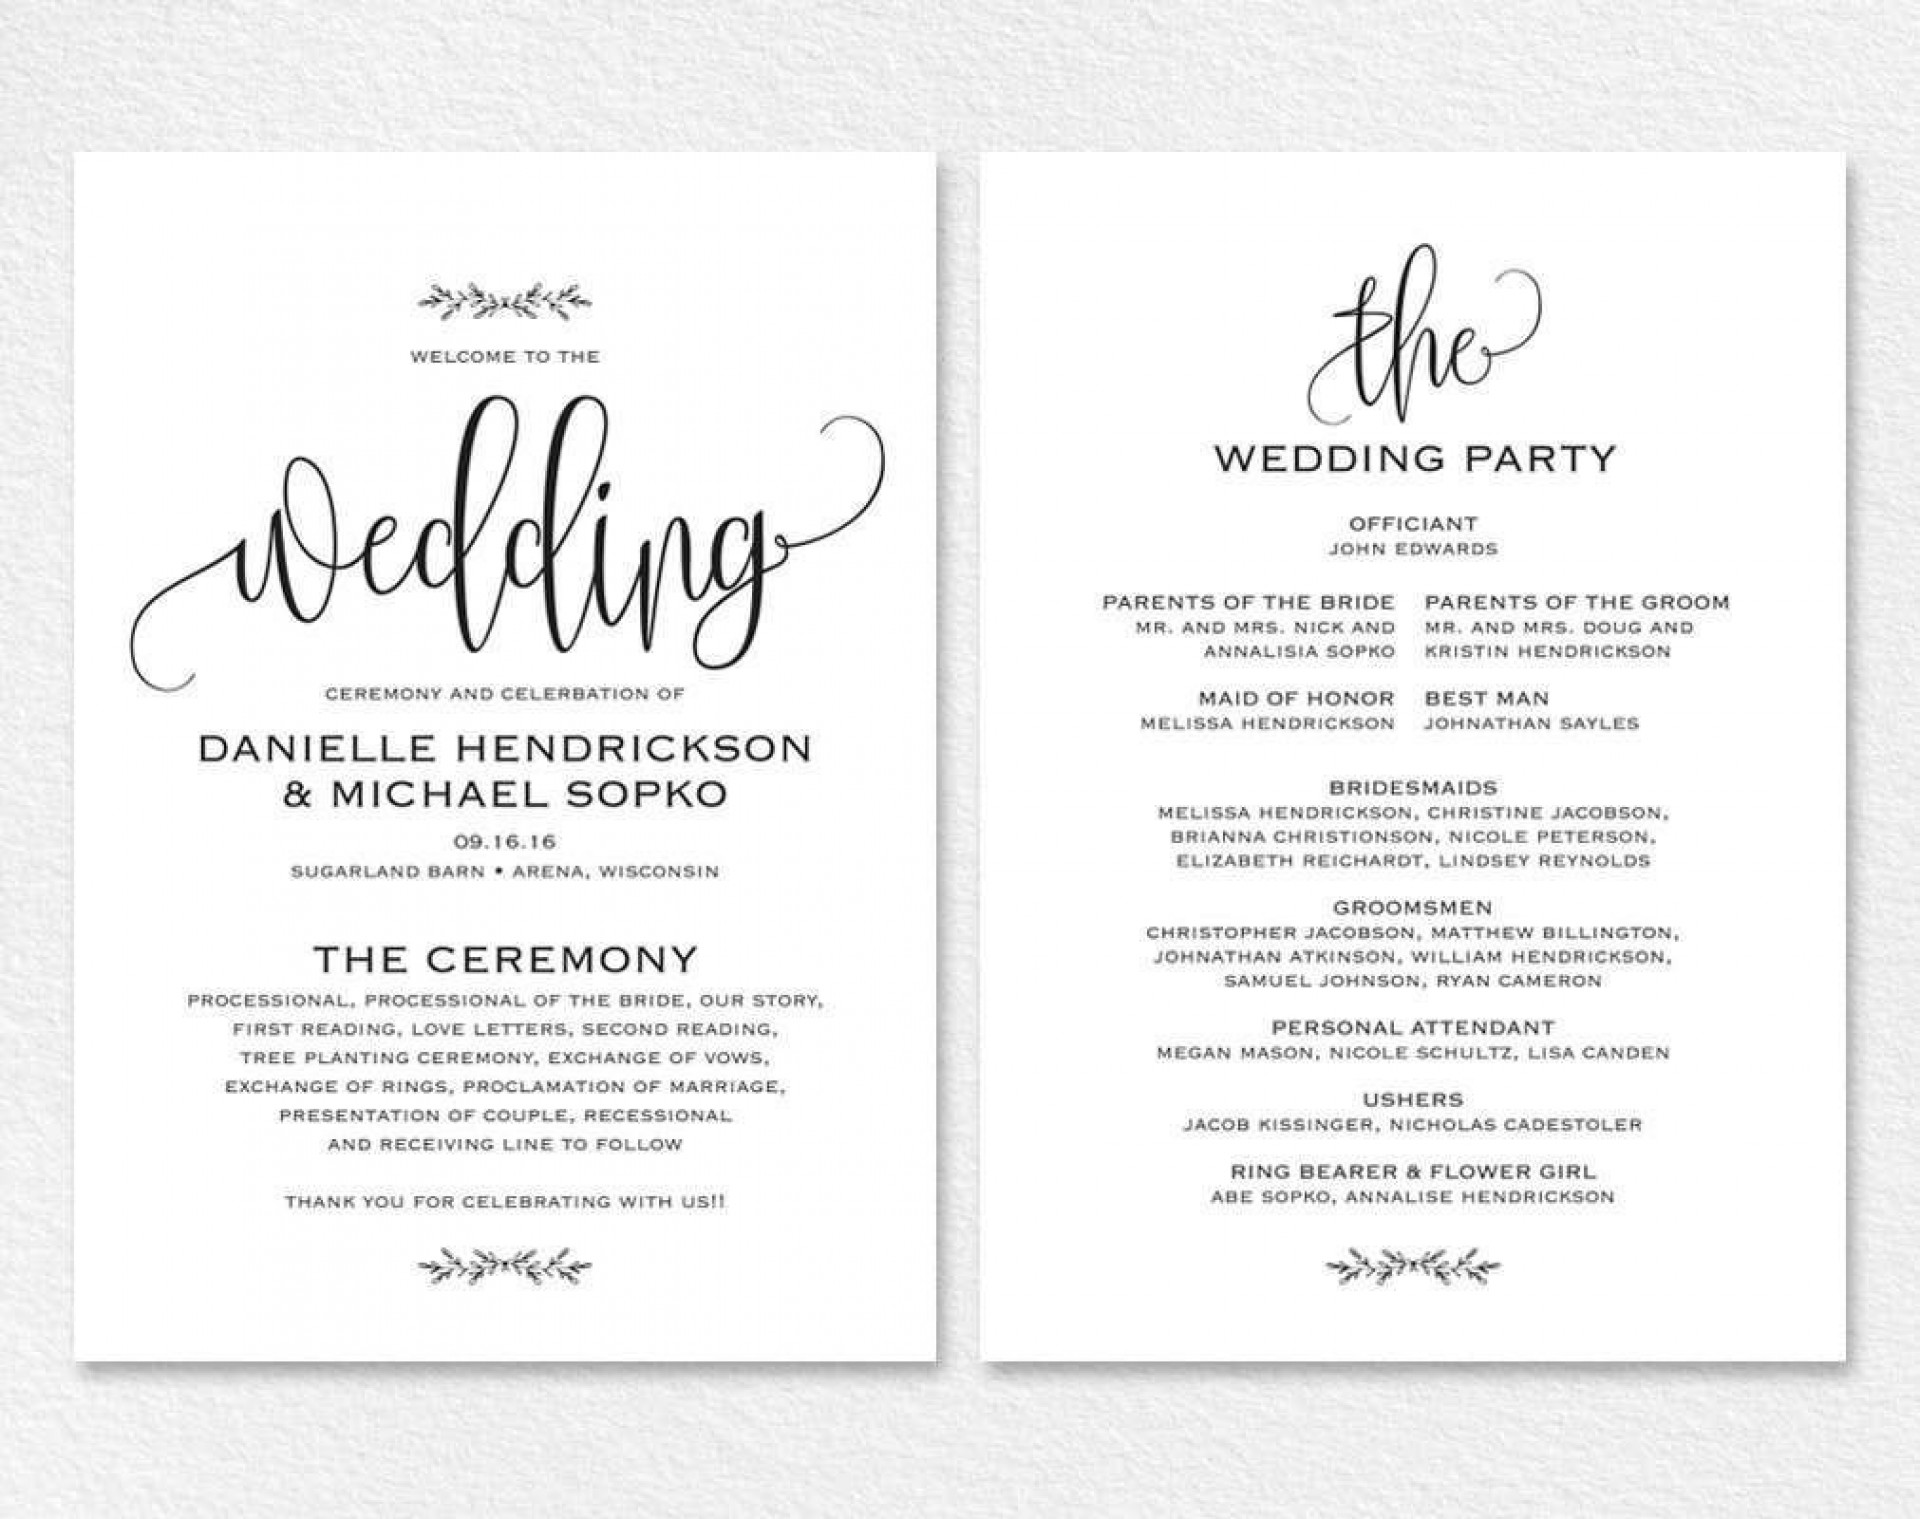 000 Staggering Free Wedding Template For Word High Resolution  Invitation In Marathi Menu1920